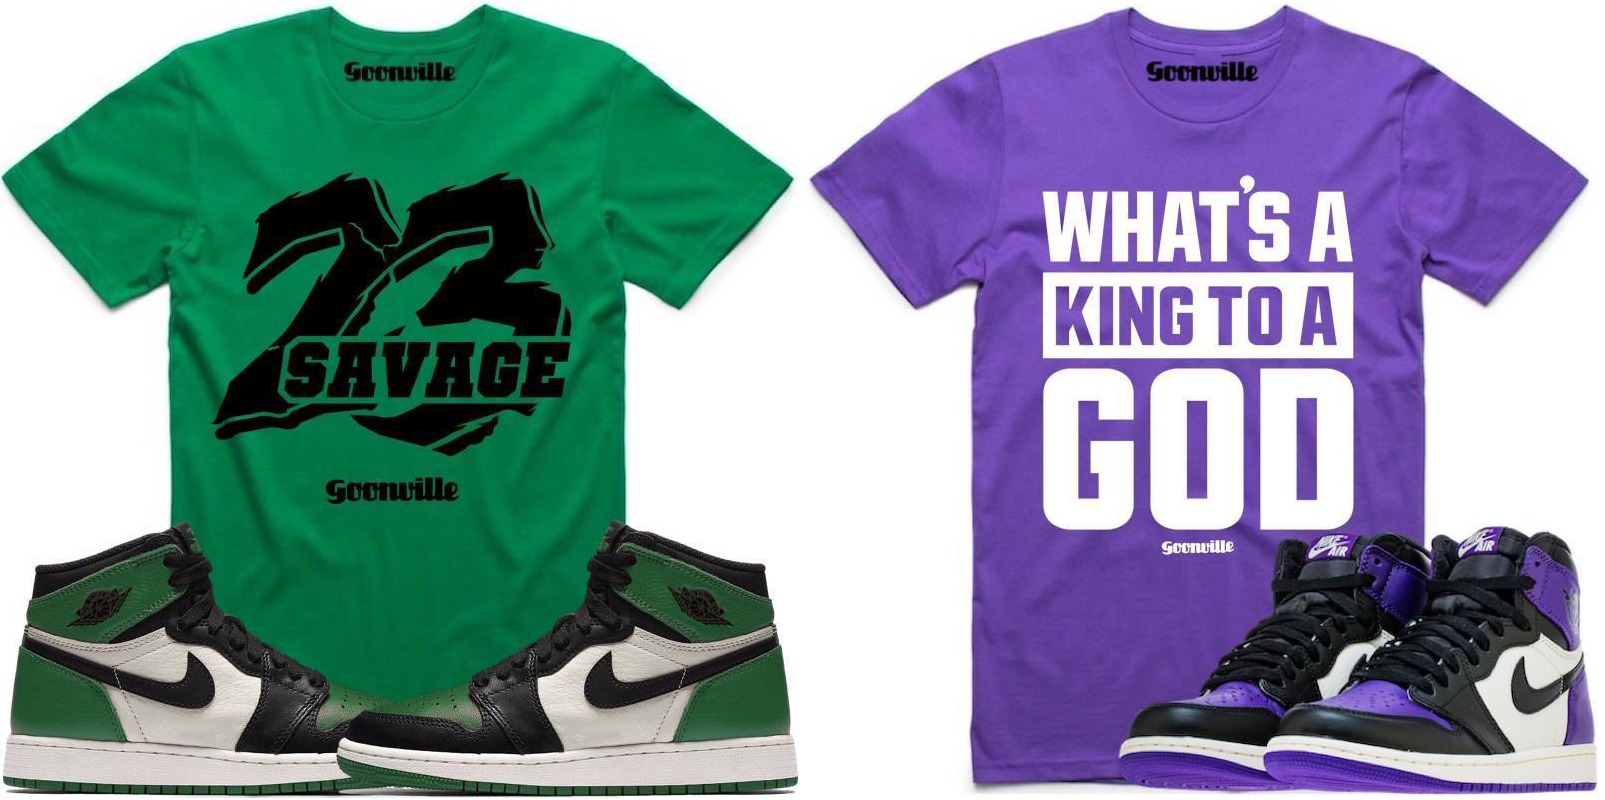 """0ccd17038575 Goonville Sneaker T-Shirts to Match the Air Jordan 1 """"Pine Green"""" and  """"Court Purple"""""""